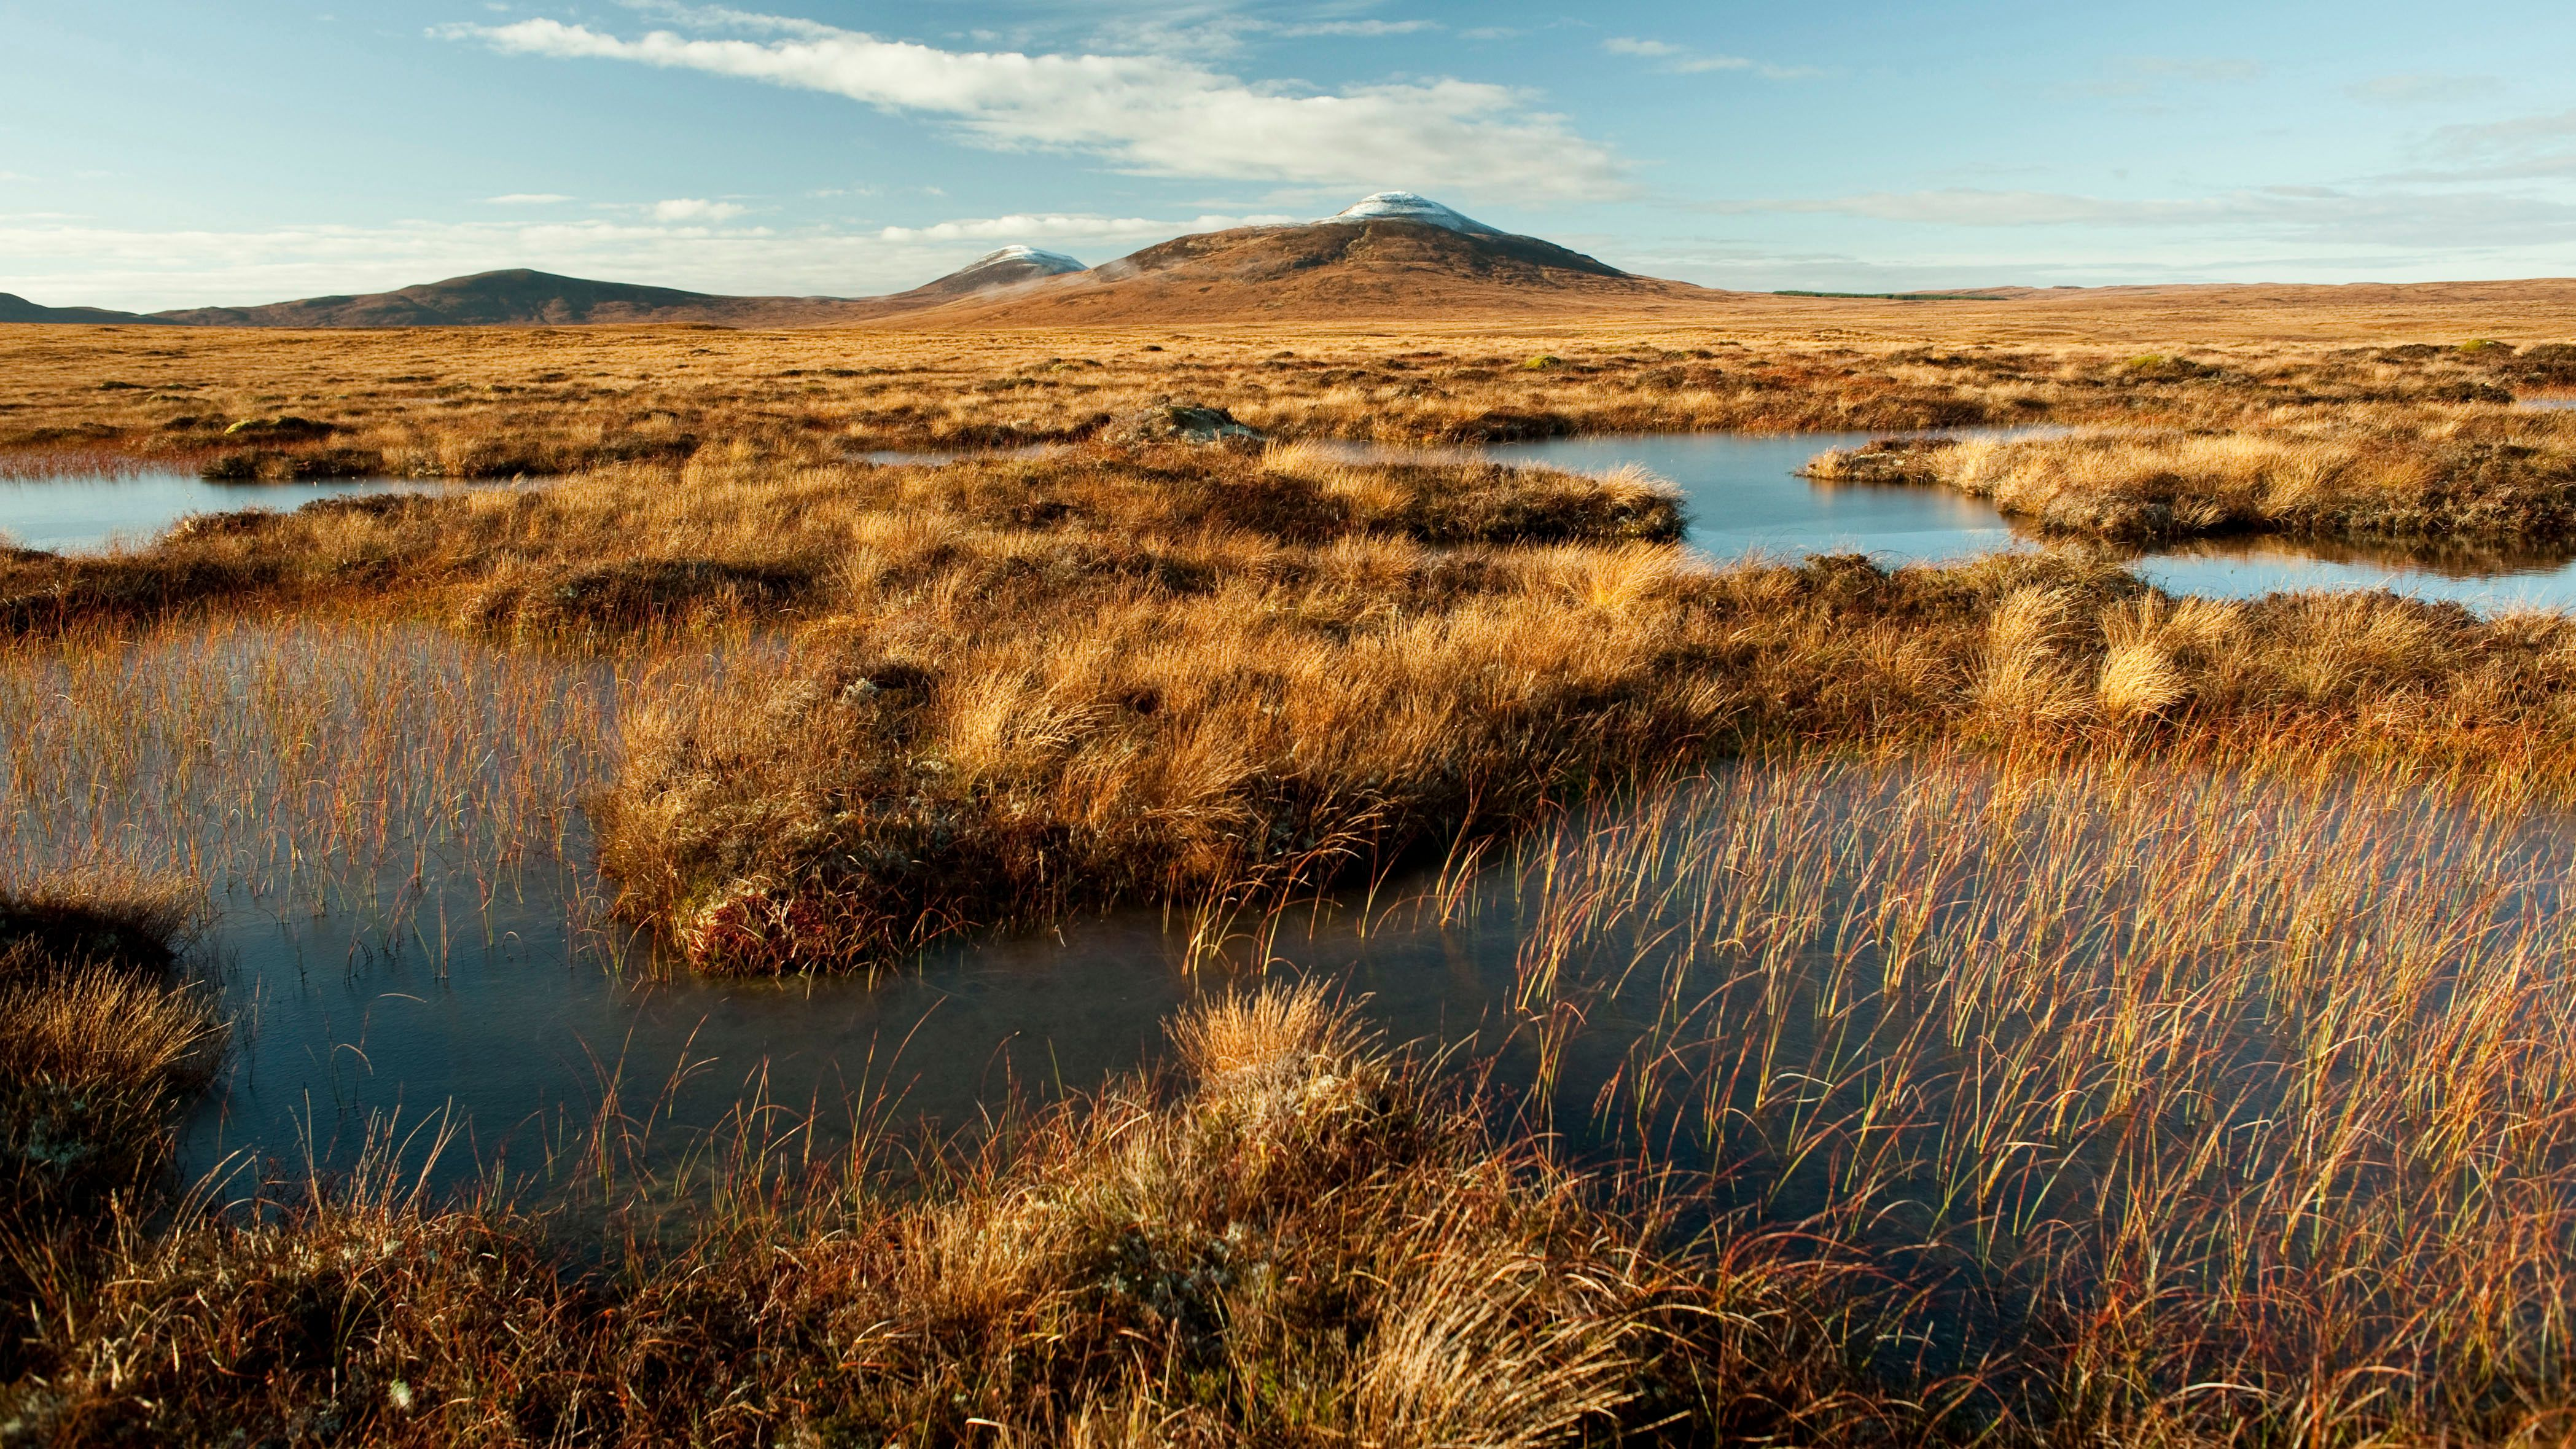 Flow Country stretches across Caithness and Sutherland in the far north of Scotland (Credit: Eleanor Bentall)